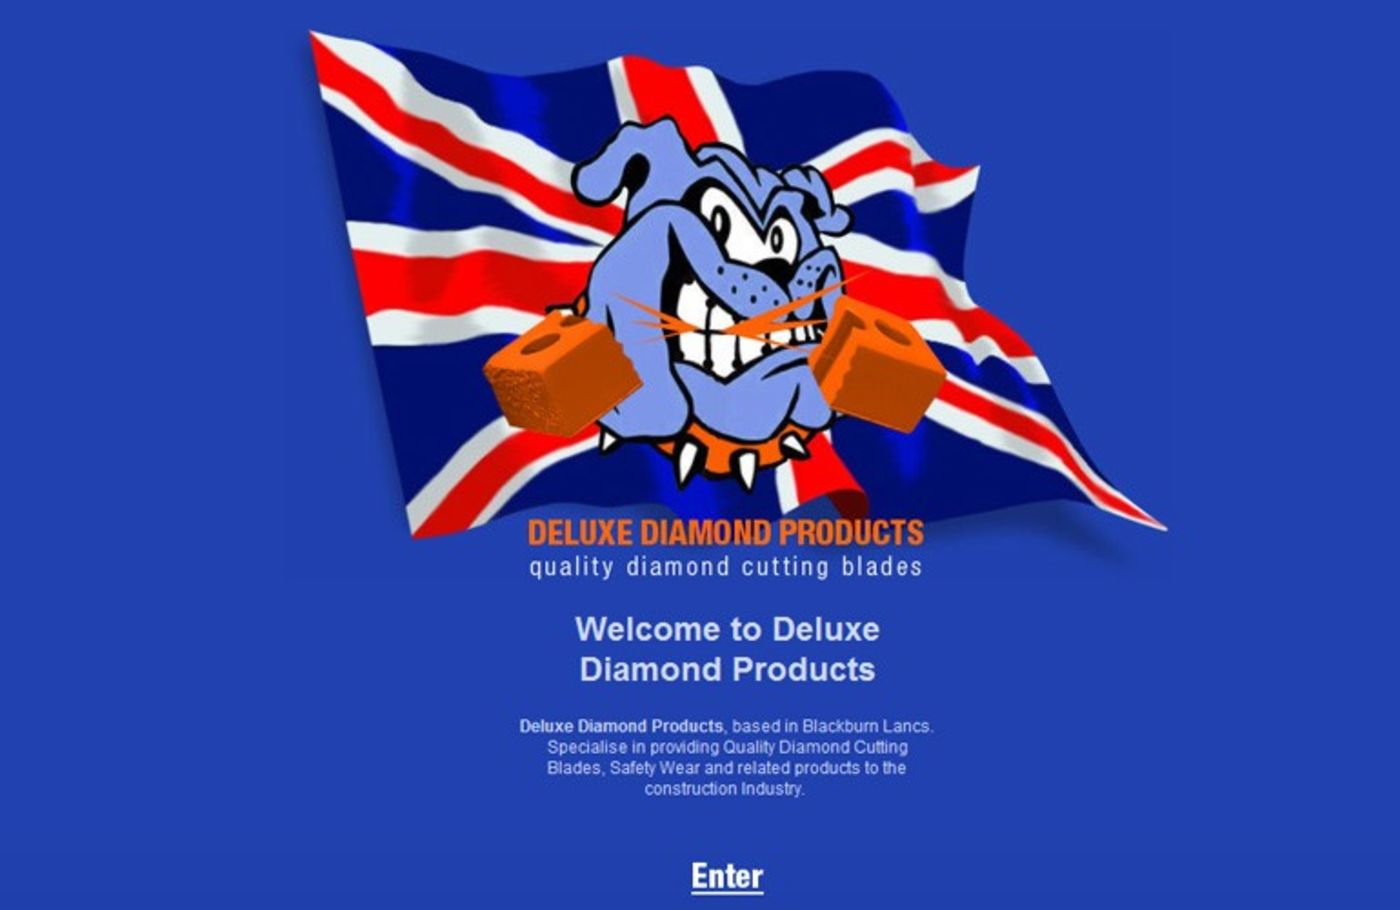 Deluxe Diamond Products Welcome